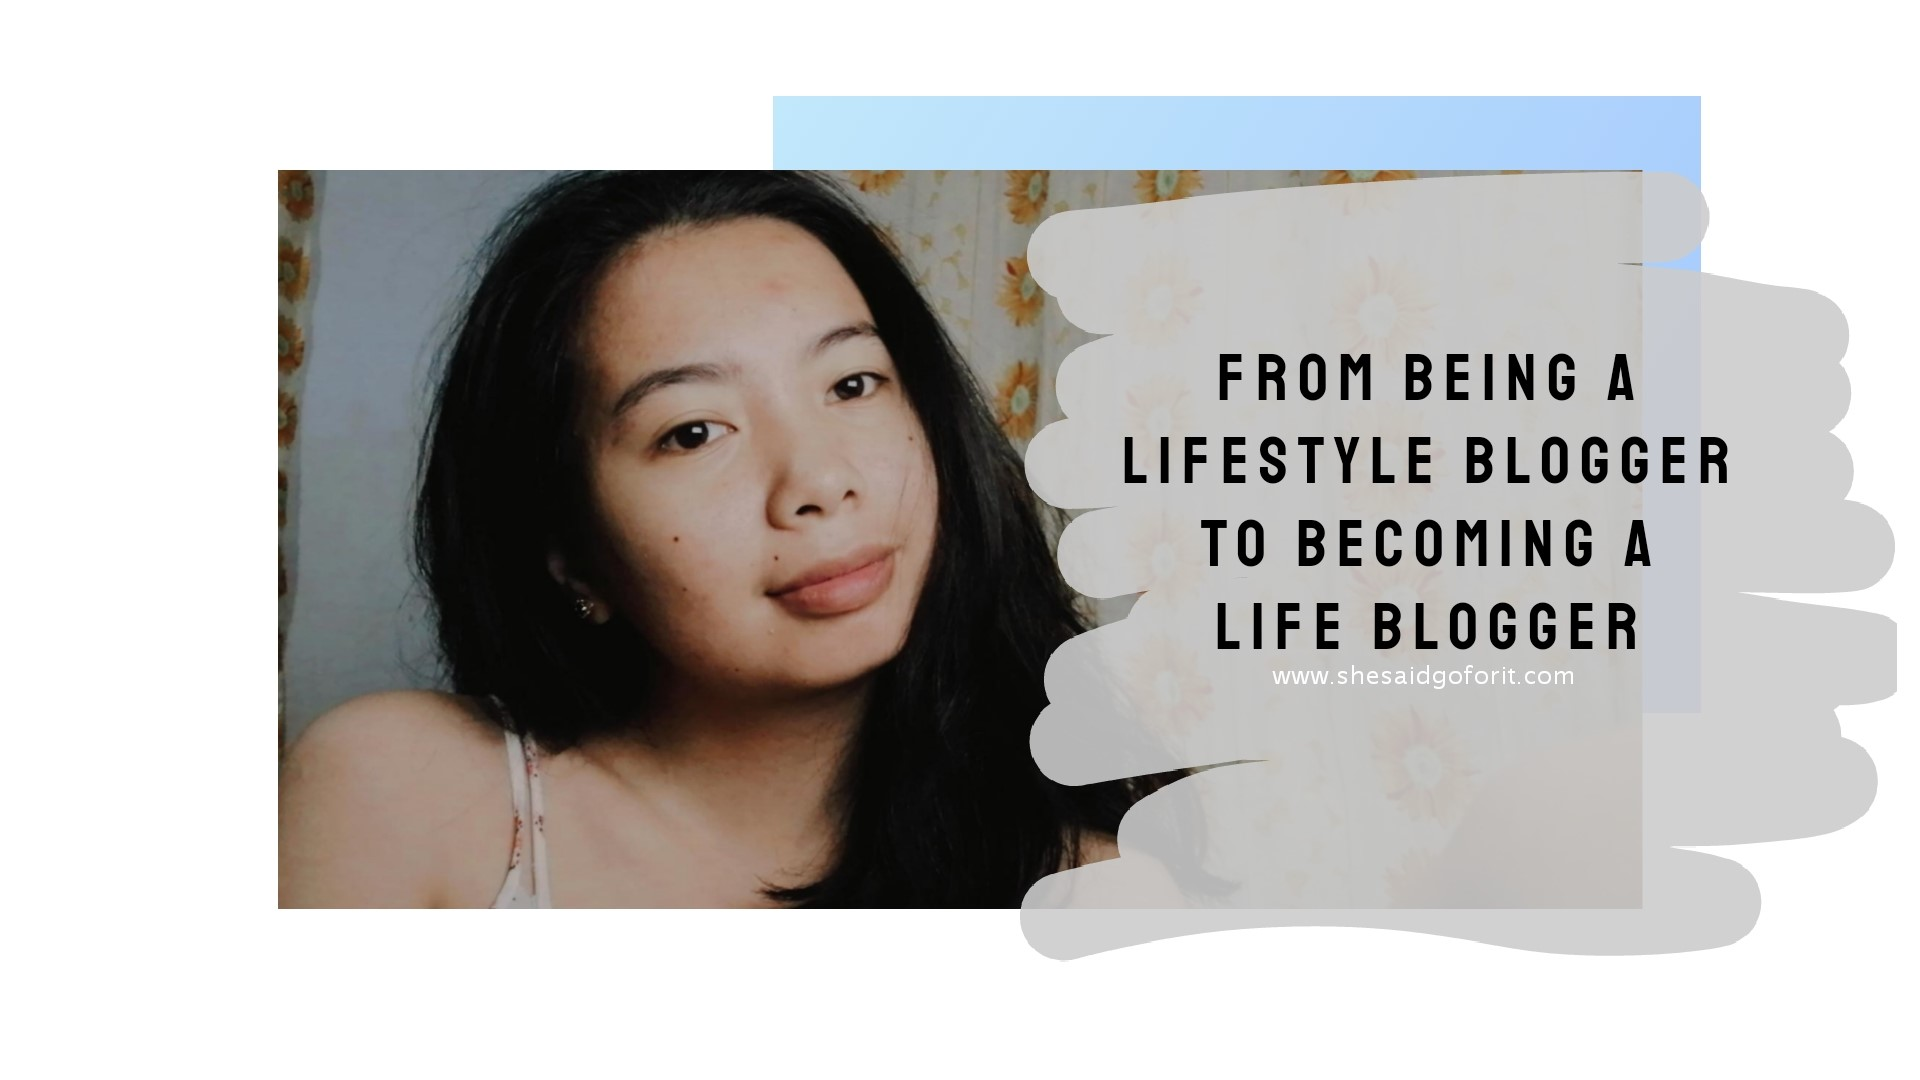 How I shift from being a lifestyle blogger to becoming a life blogger